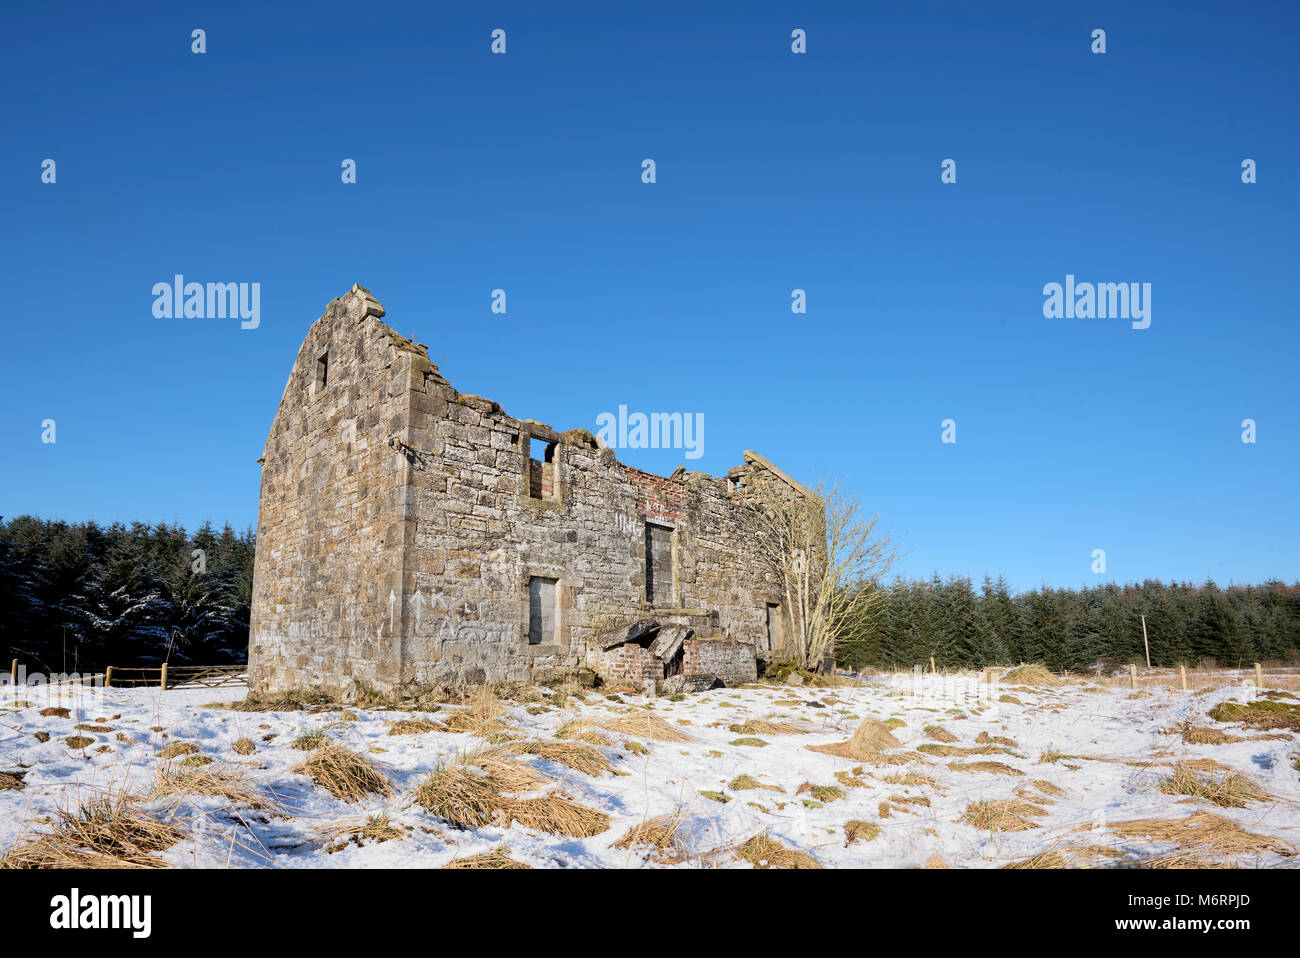 Derelict House near the village of Forth, Lanarkshire, Scotland - Stock Image